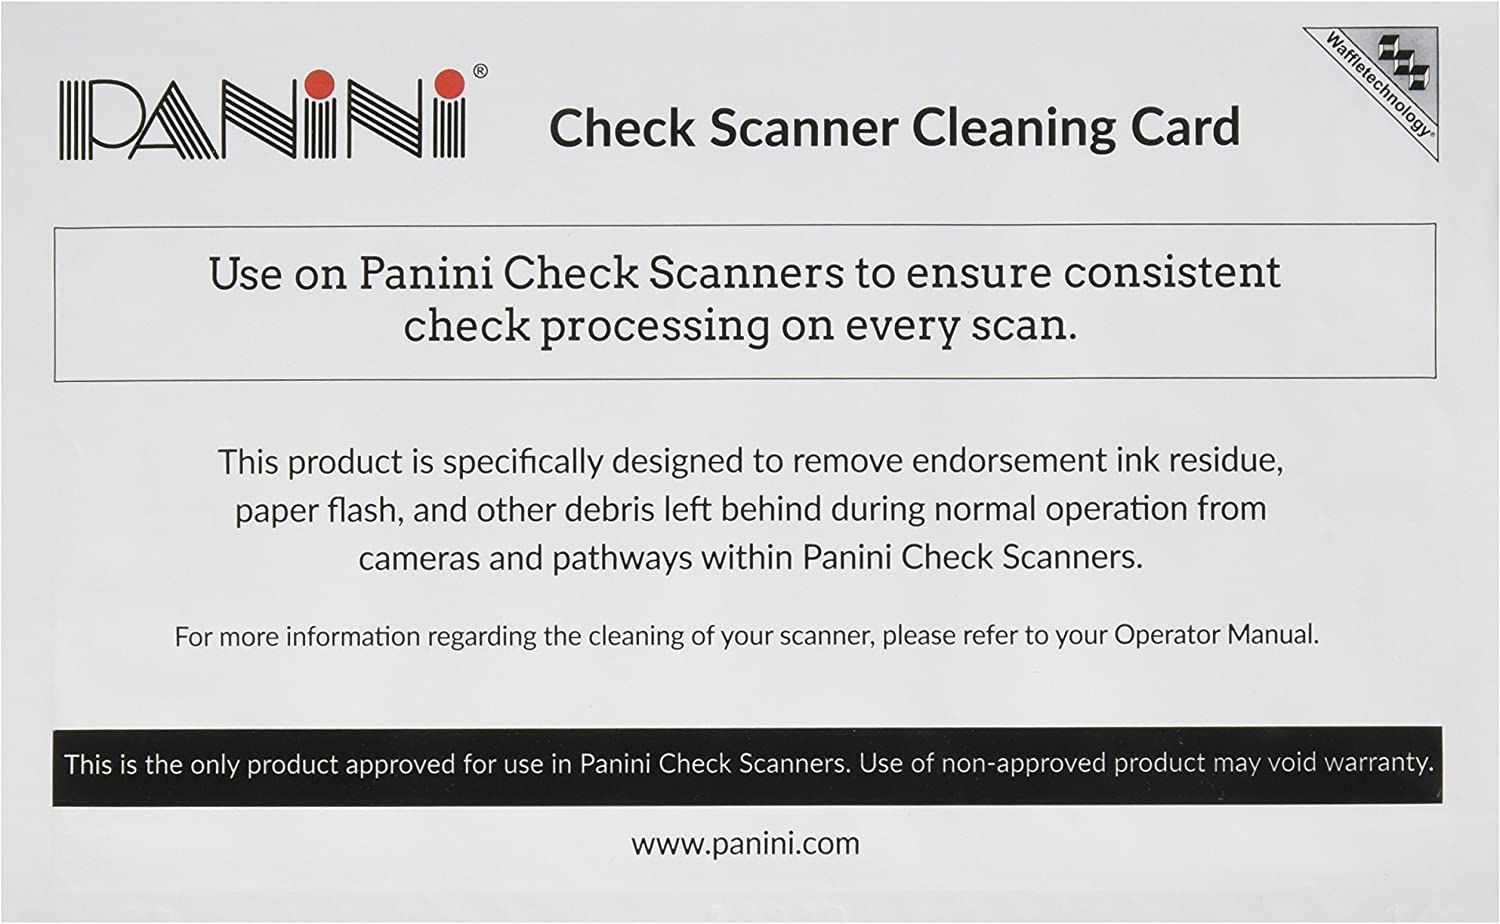 Panini Check Scanner Cleaning Cards featuring Waffletechnology (15 cards): Electronics